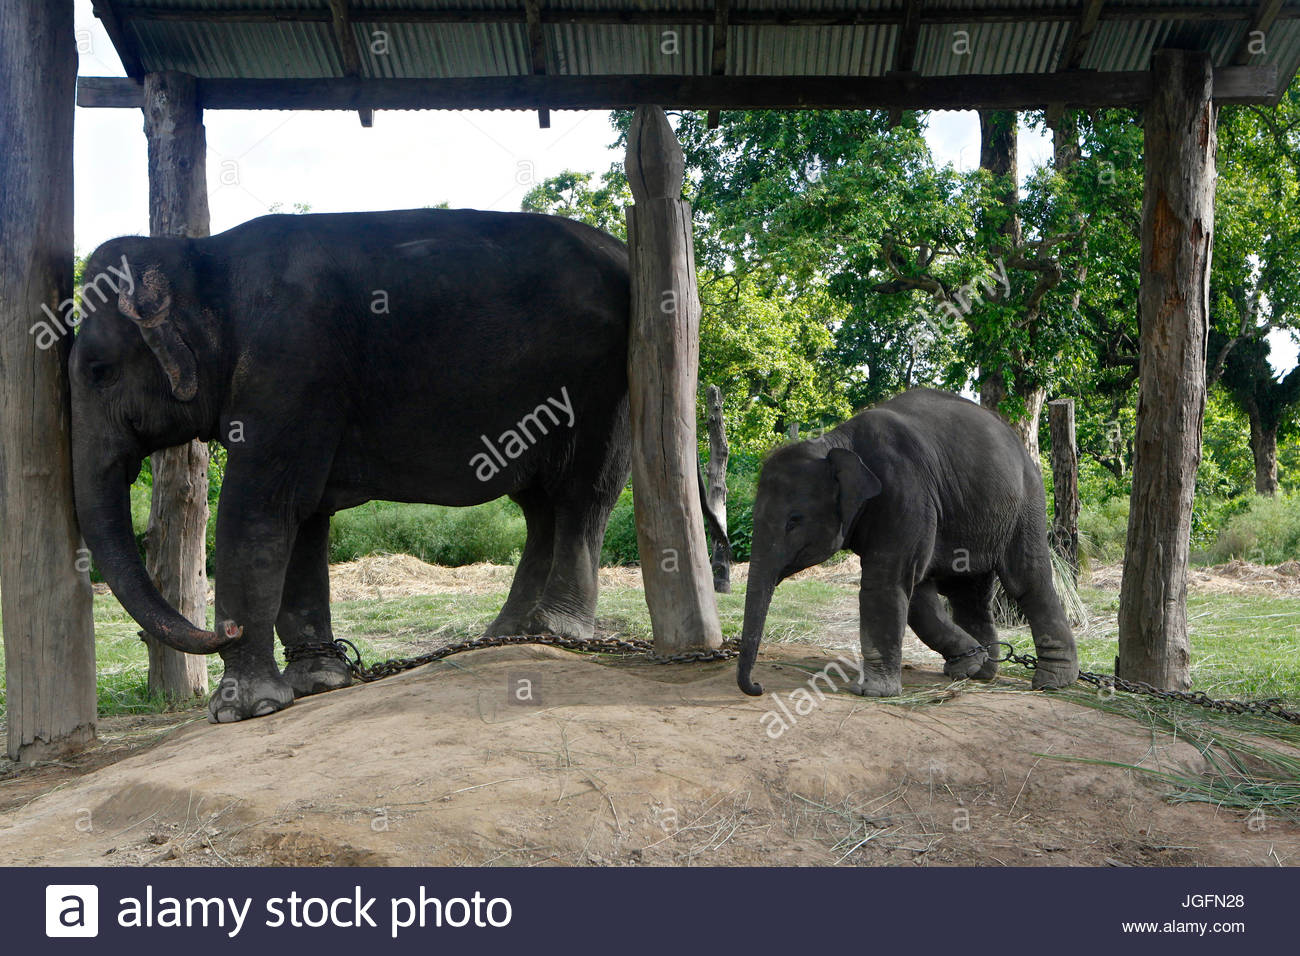 An elephant calf with mother at the Elephant Breeding Center in Chitwan National Park. - Stock Image